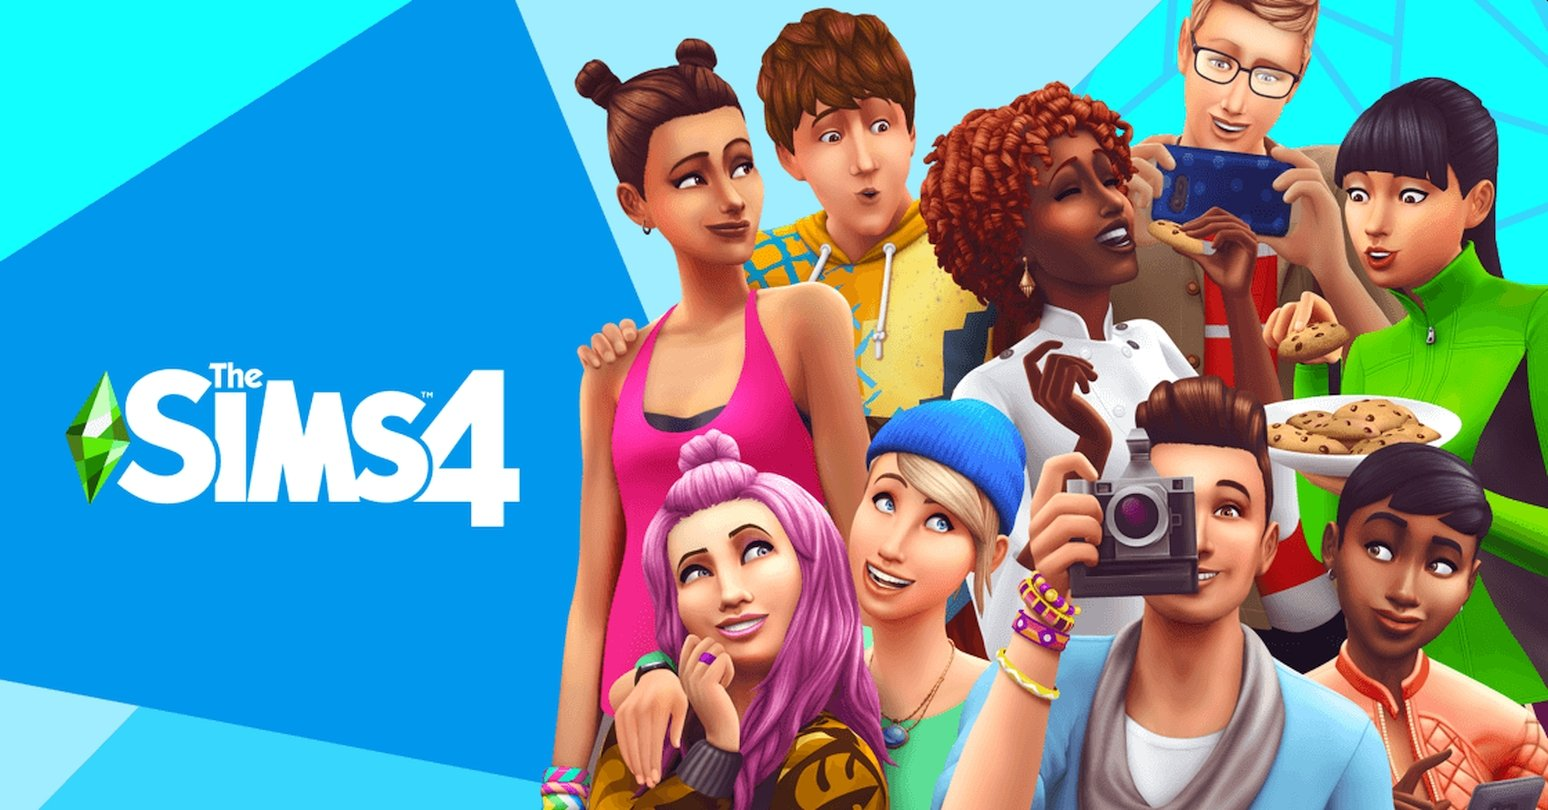 The Sims 4 Details Major Upcoming Updates For CAS Mode Including Sliders